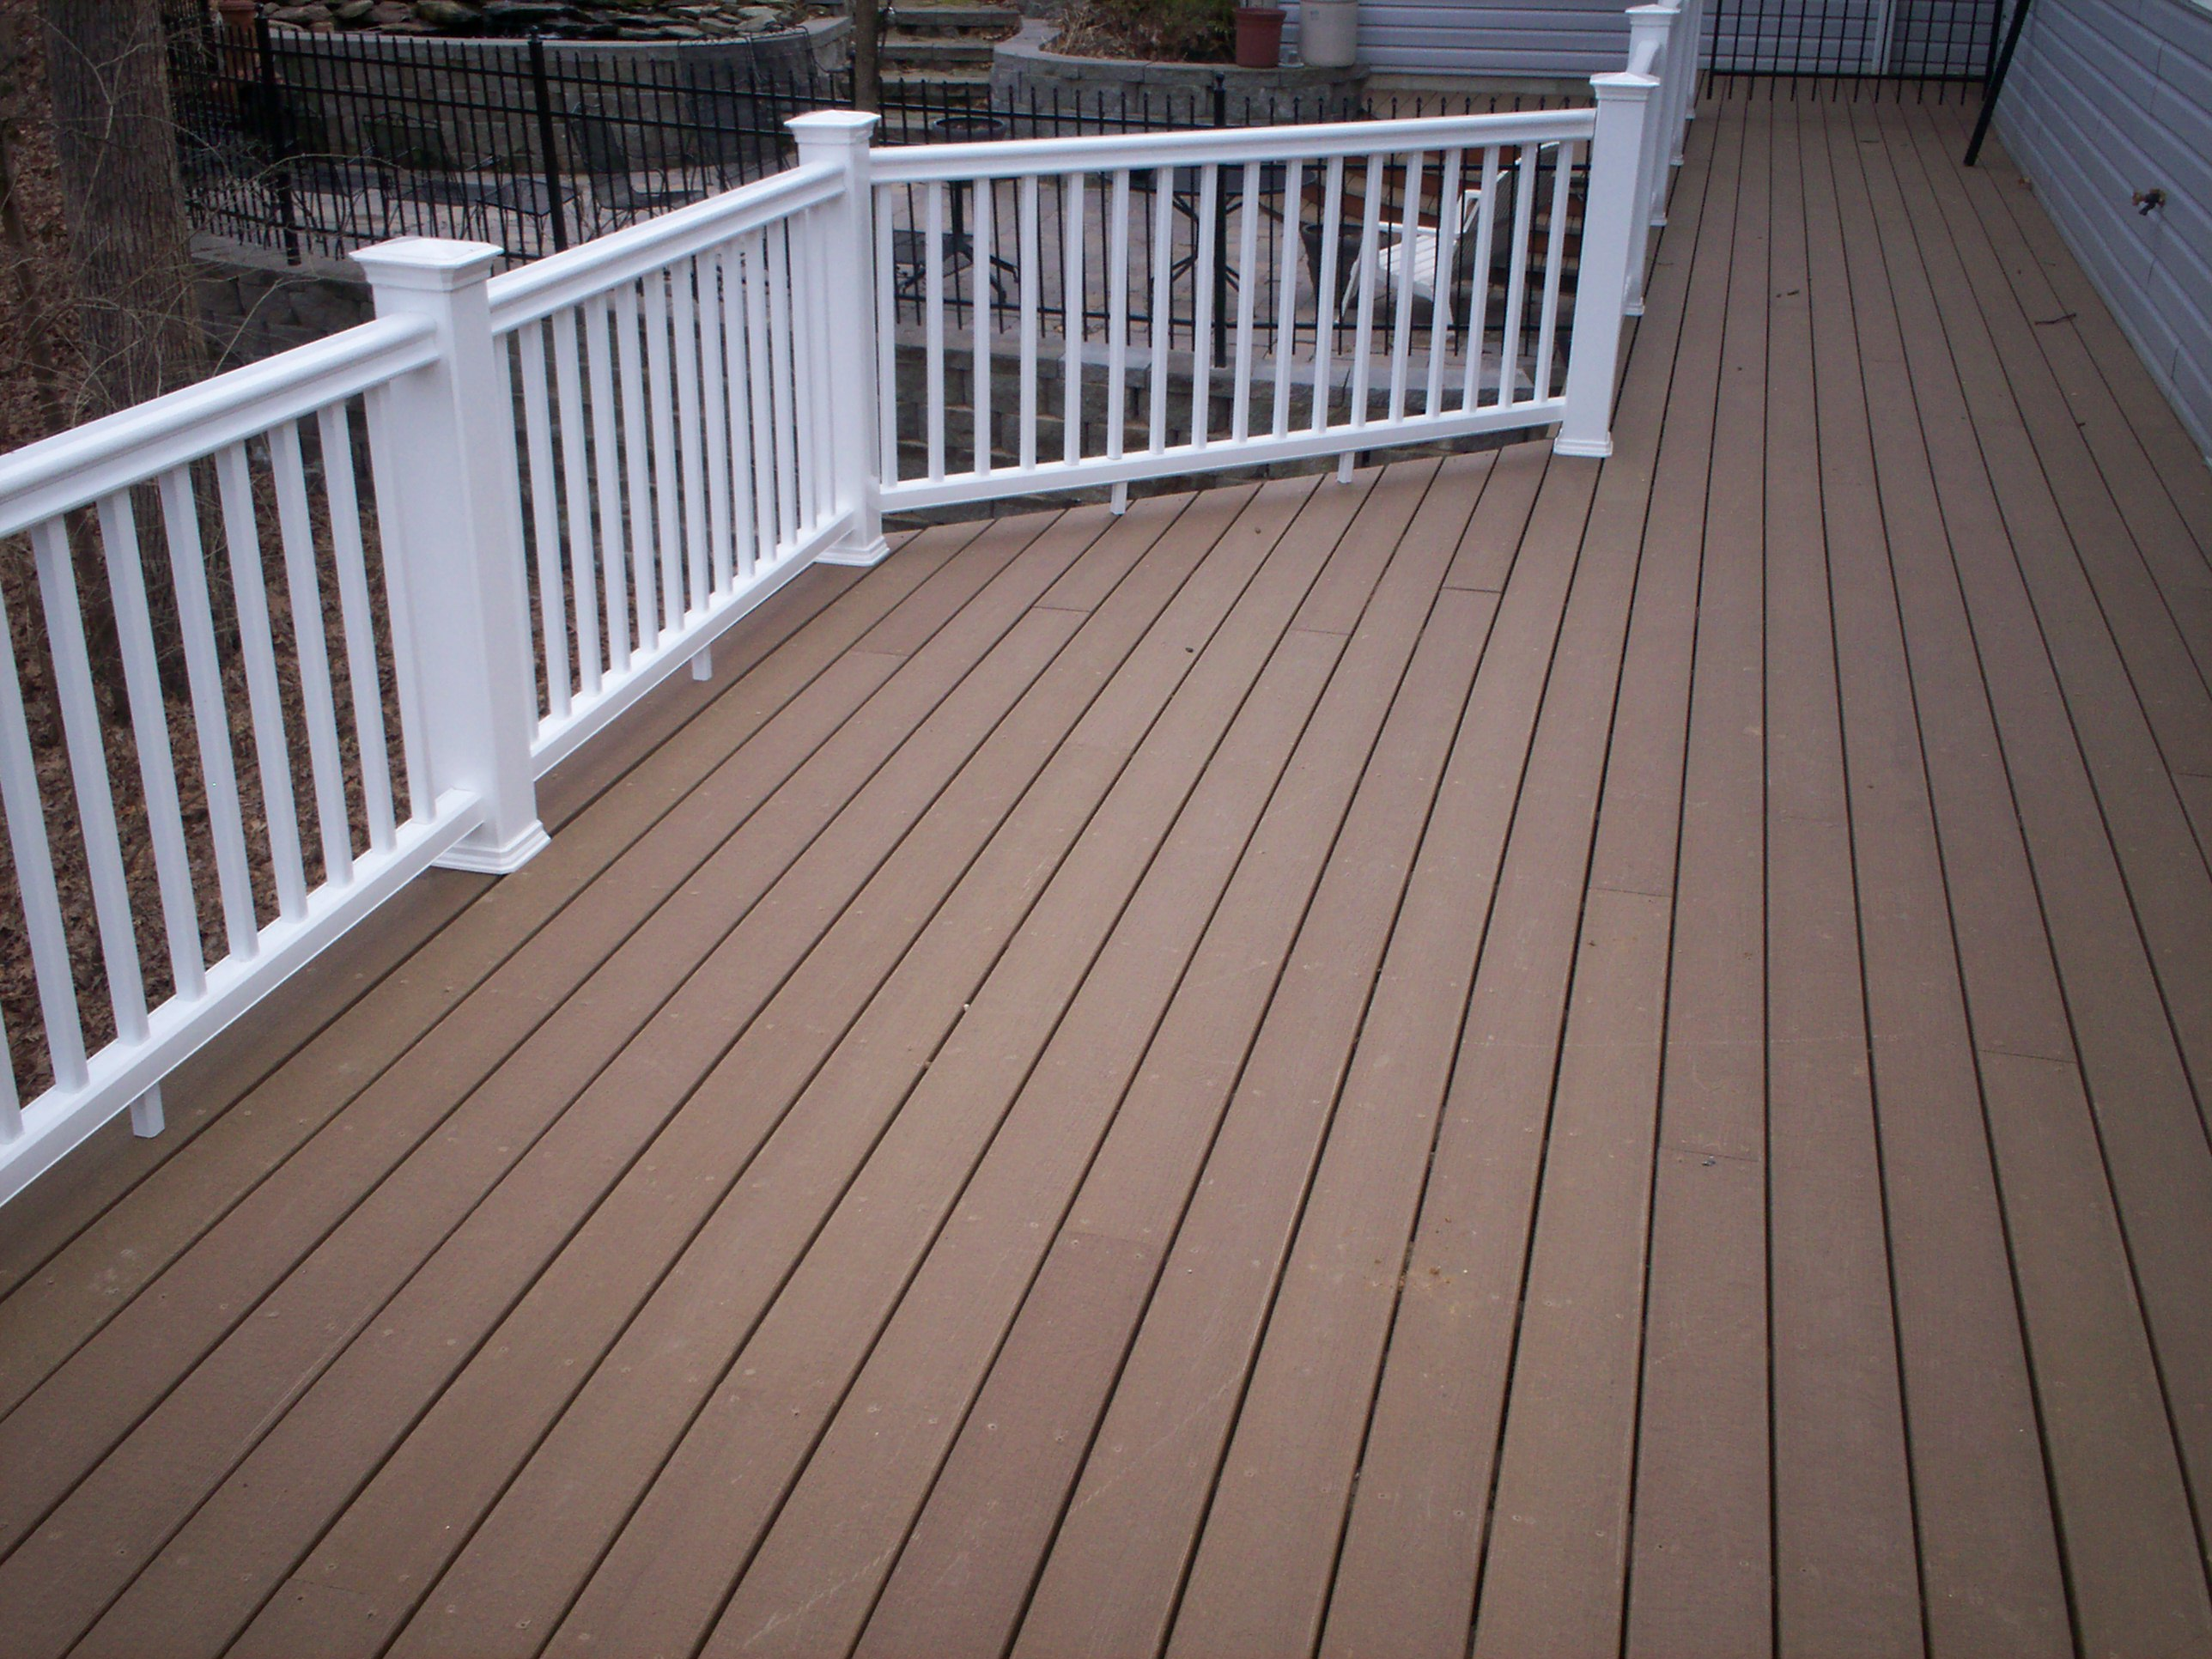 Composite decking builds awesome decks st louis decks for Building a composite deck